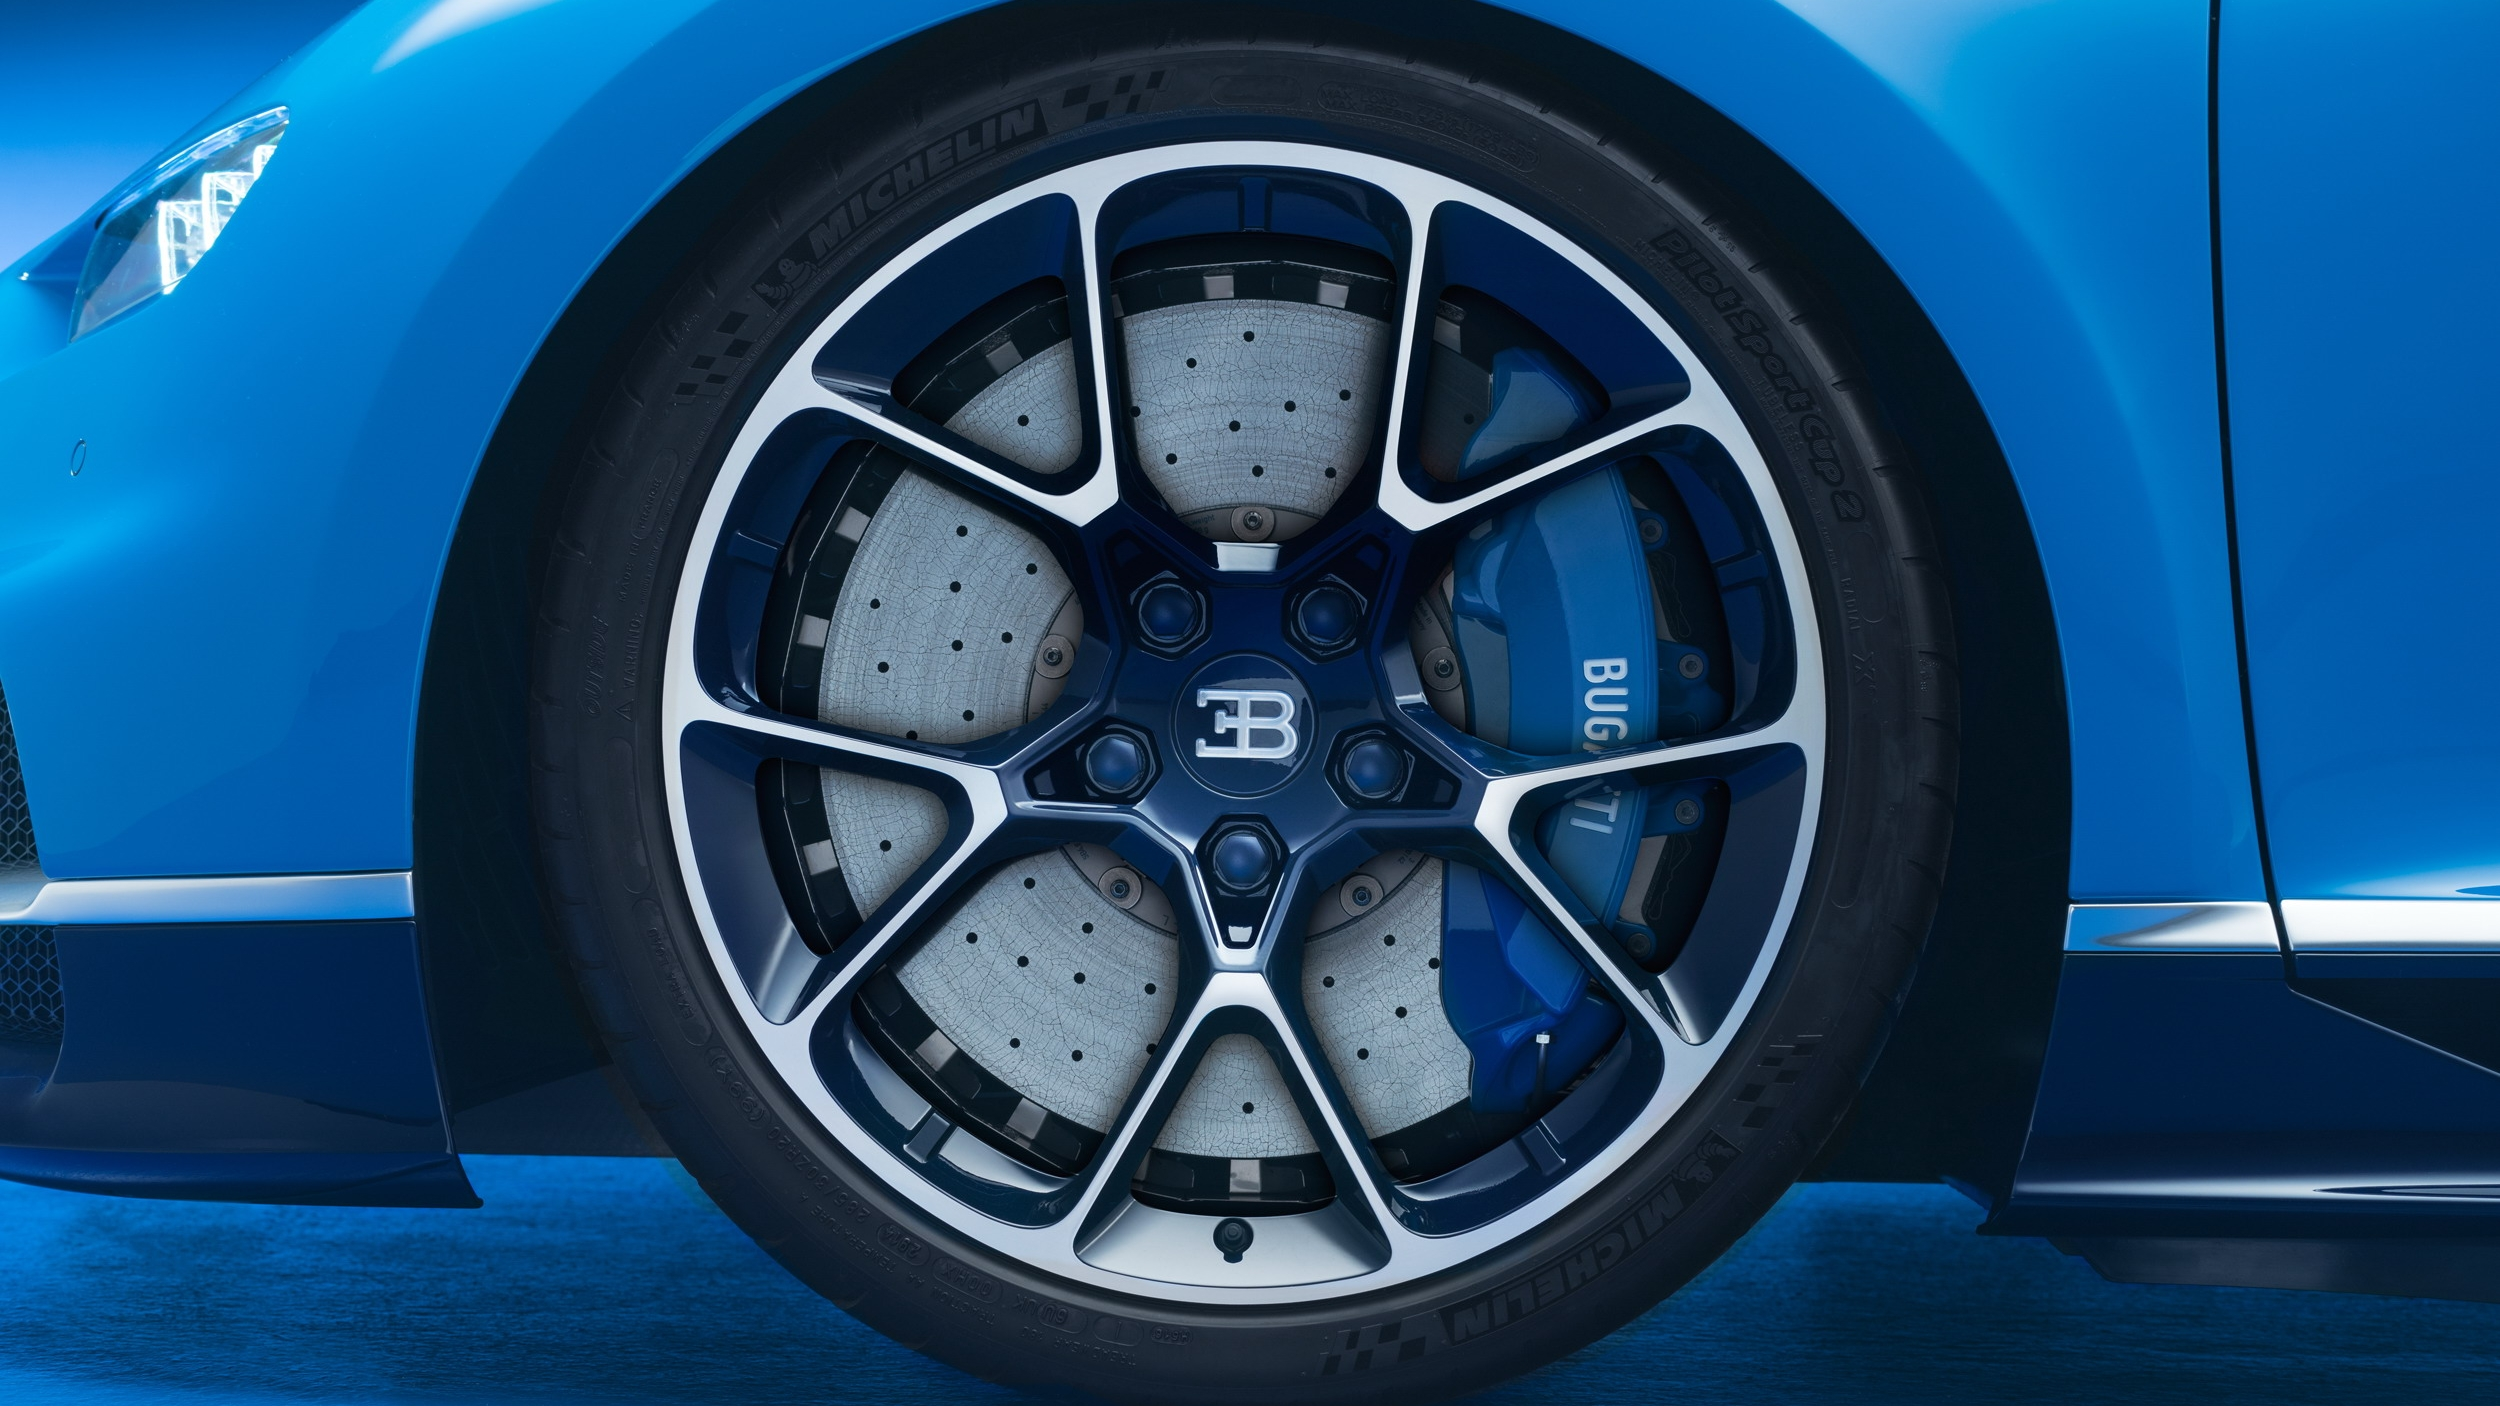 The Bugatti Chiron S Tires Are Actually Cheaper Than The